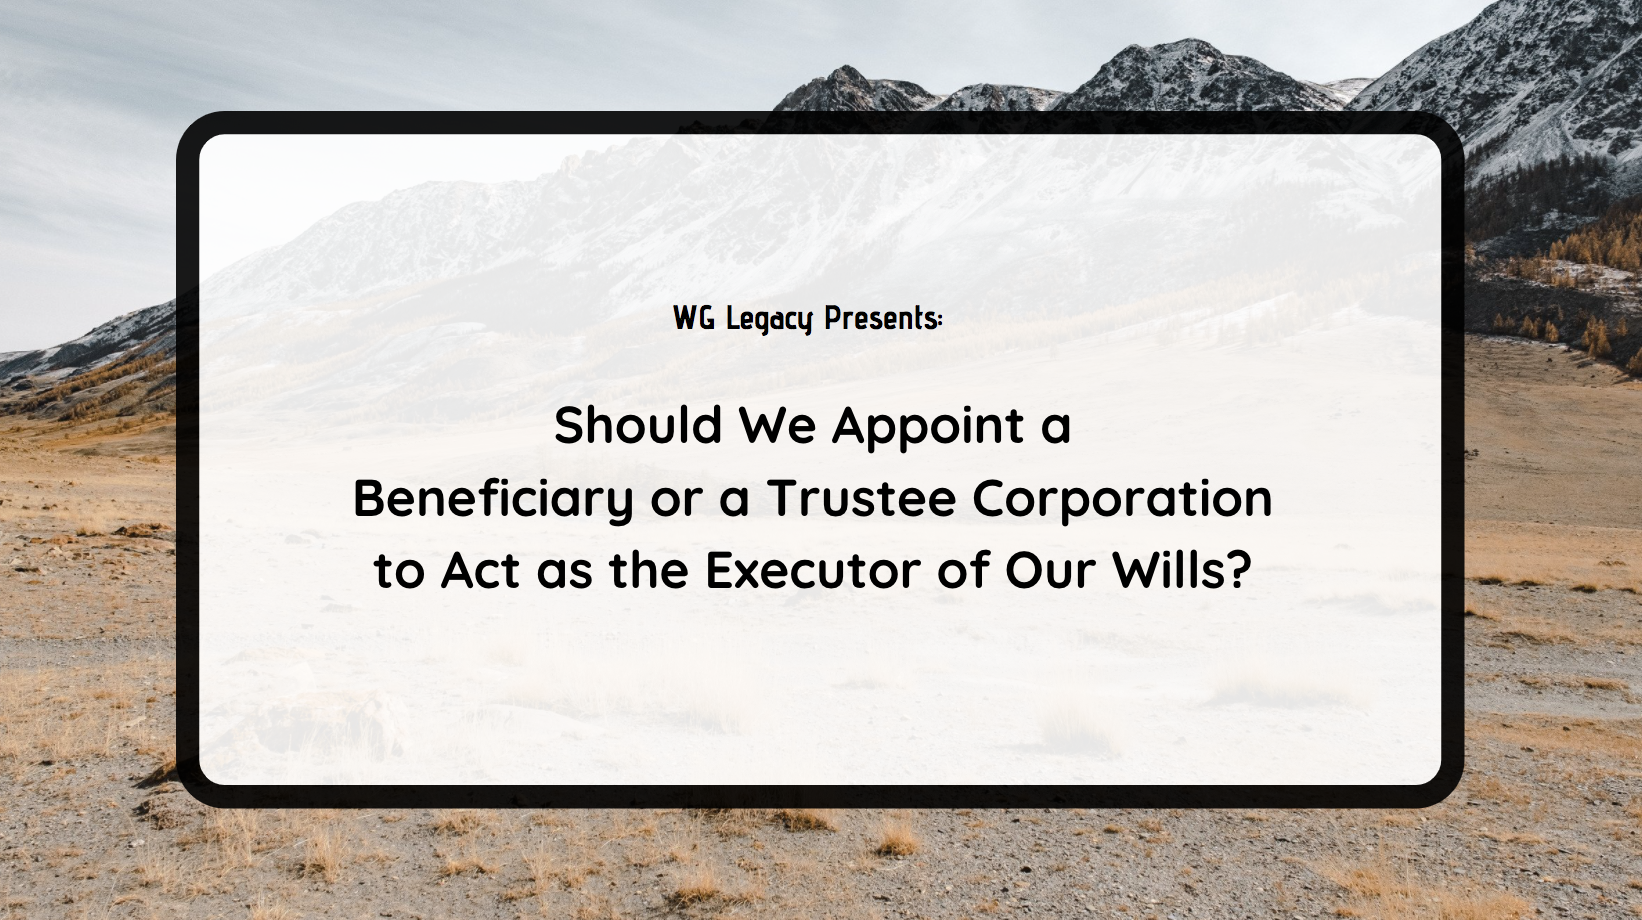 Should We Appoint a Beneficiary or a Trustee Corporation to  Act as the Executor of Our Wills?